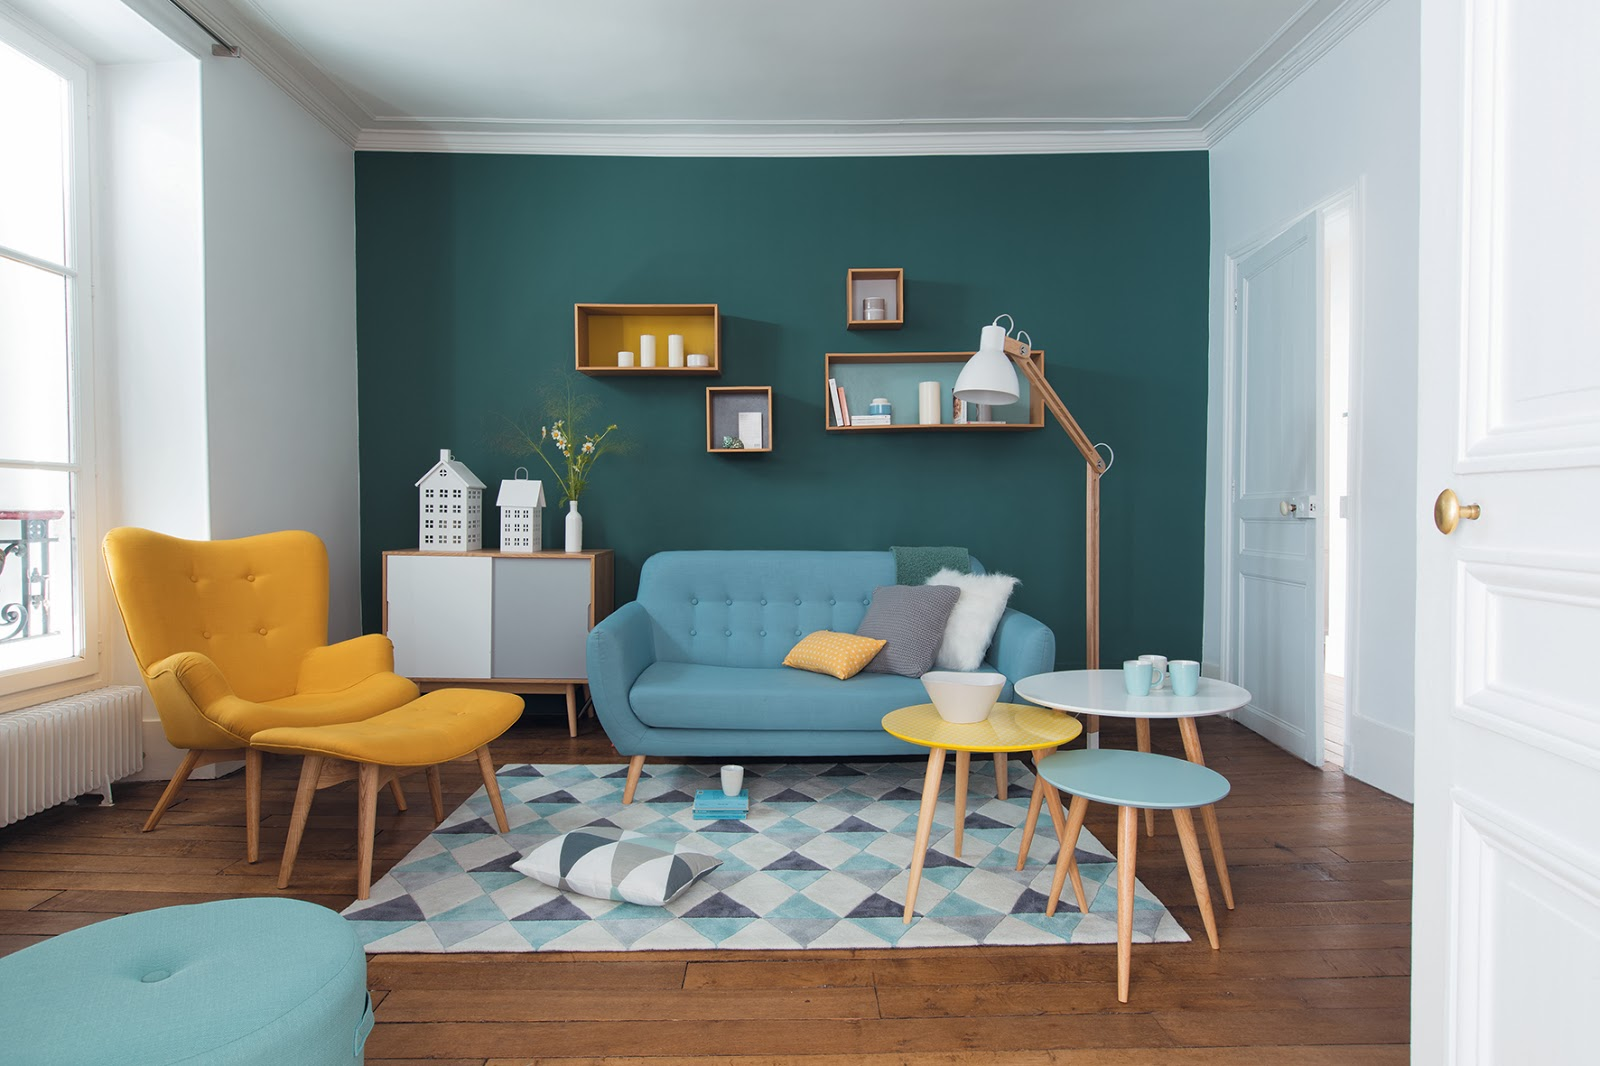 La nouvelle collection nordique de maisons du monde lily for Maison du monde urne